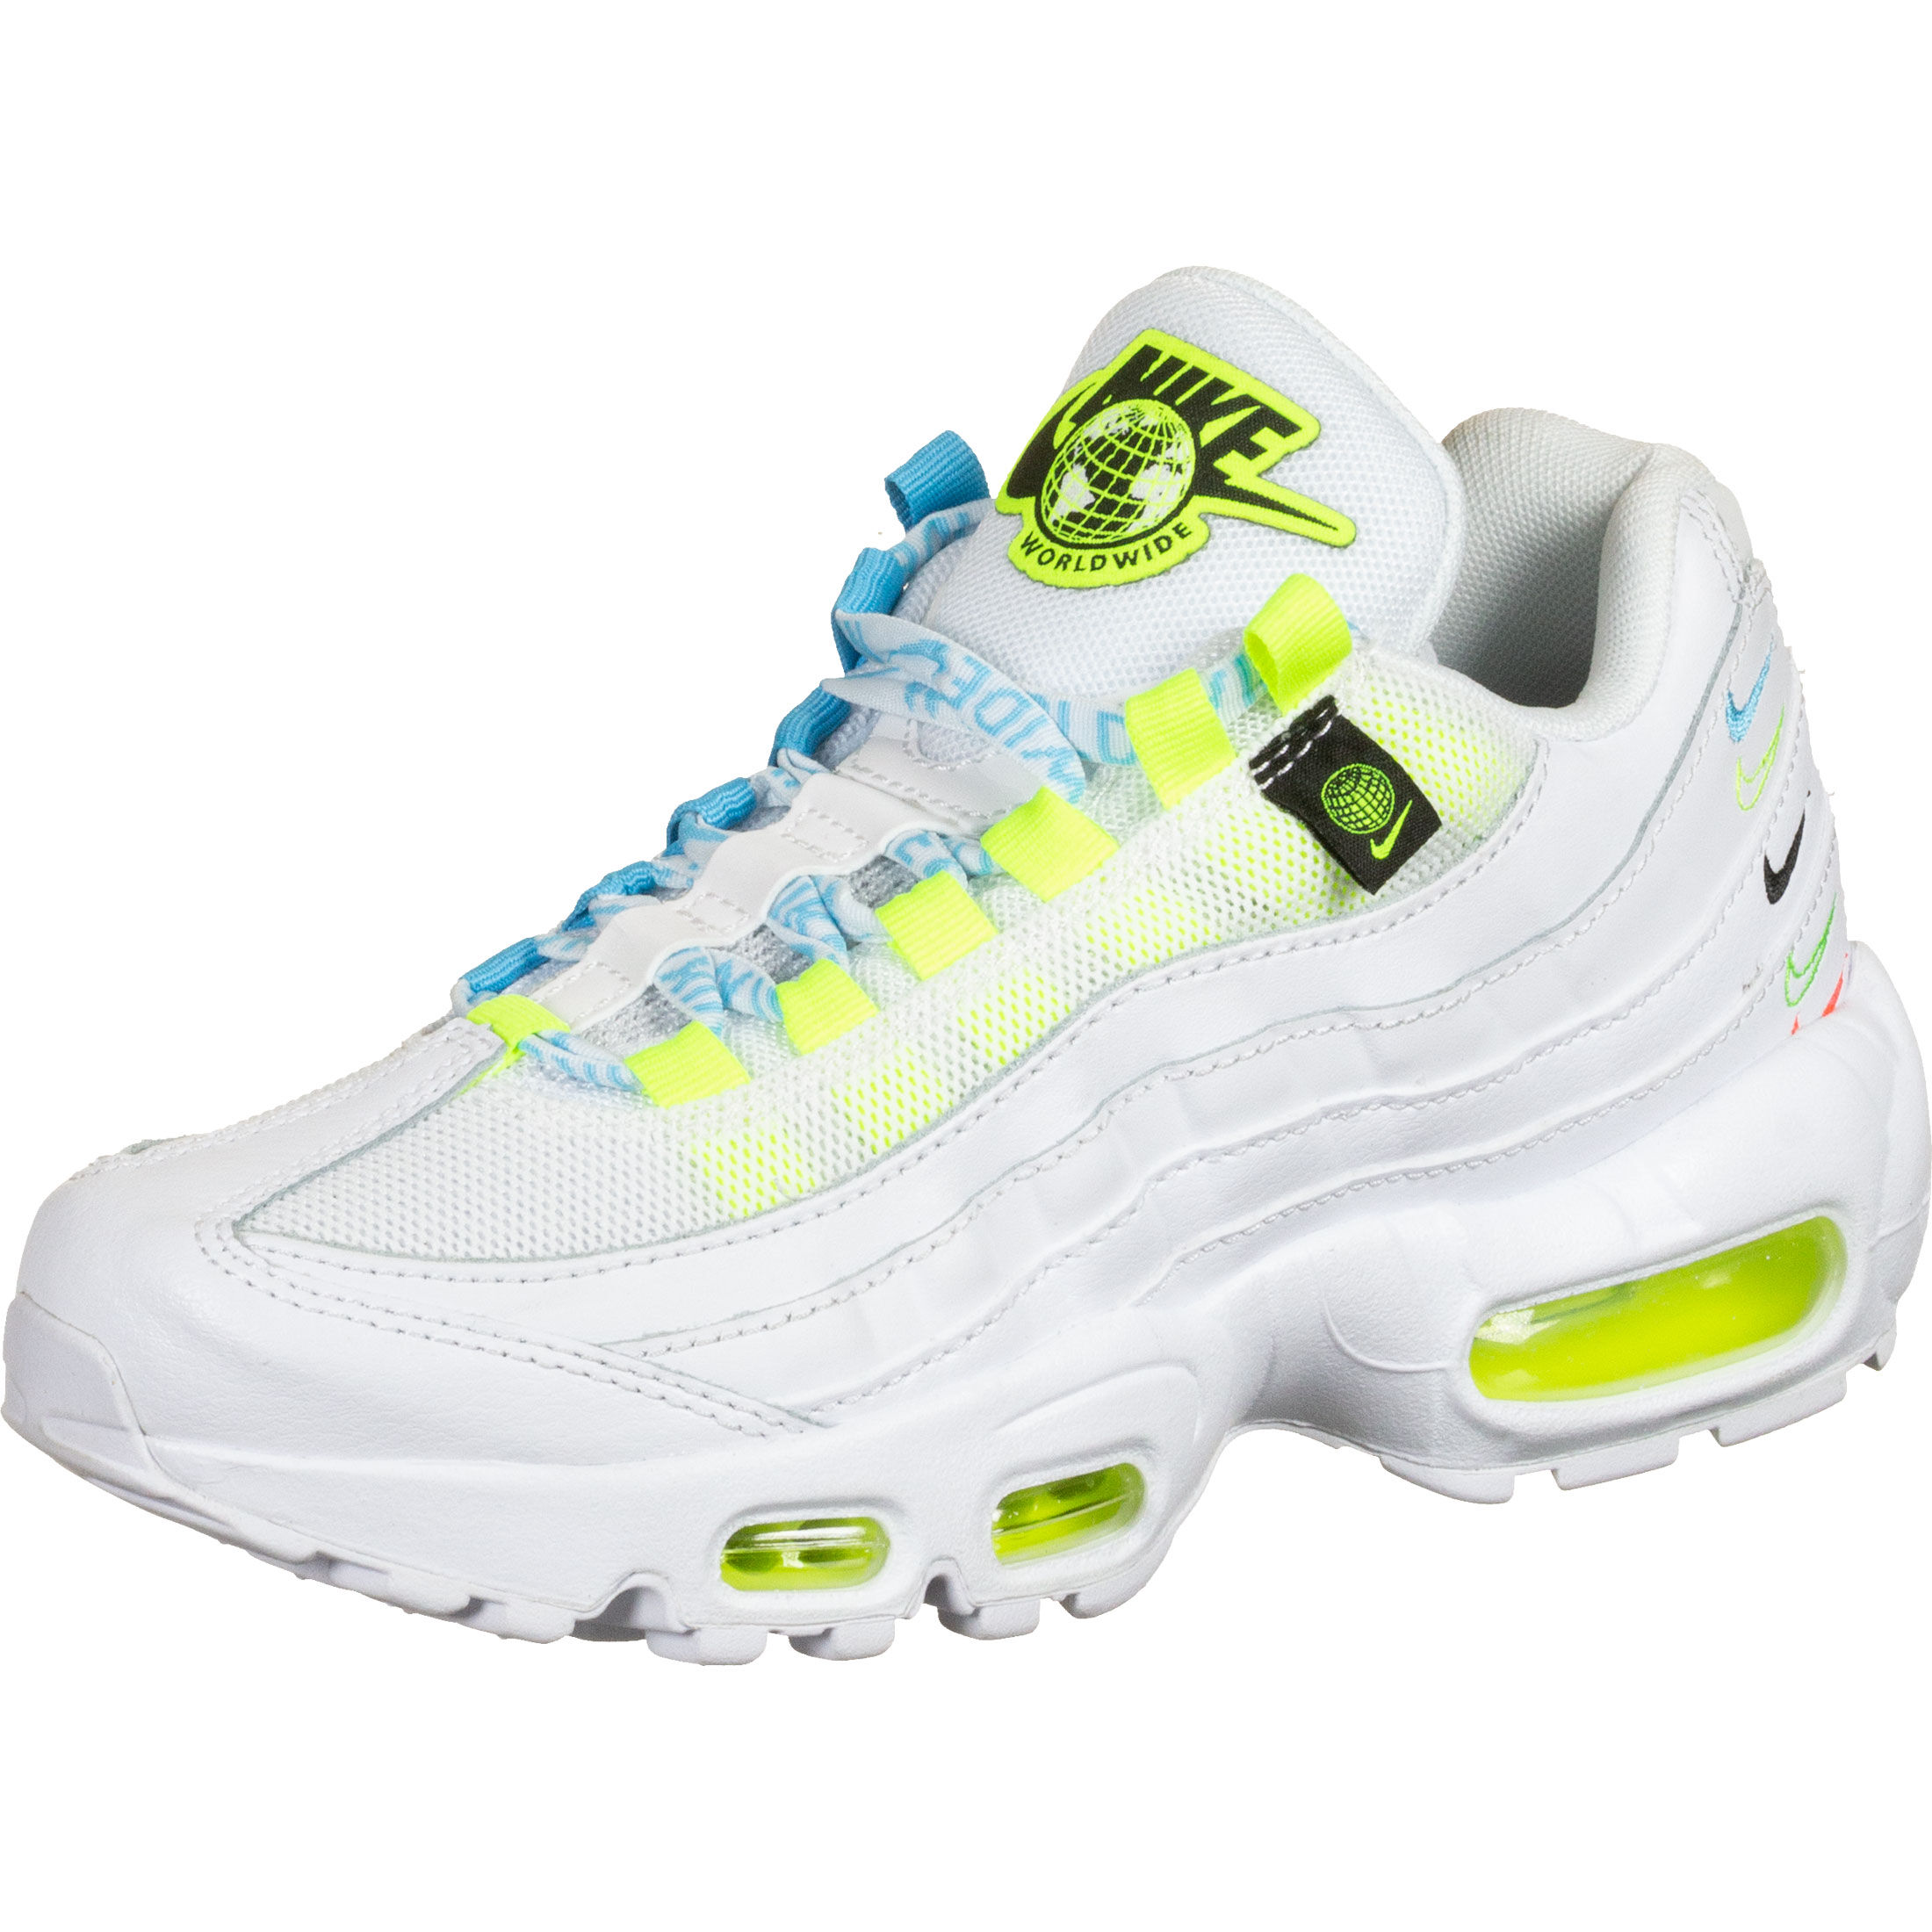 Series de tiempo Oxidar elección  Nike Air Max 95 SE Worldwide - Sneakers Low at Stylefile